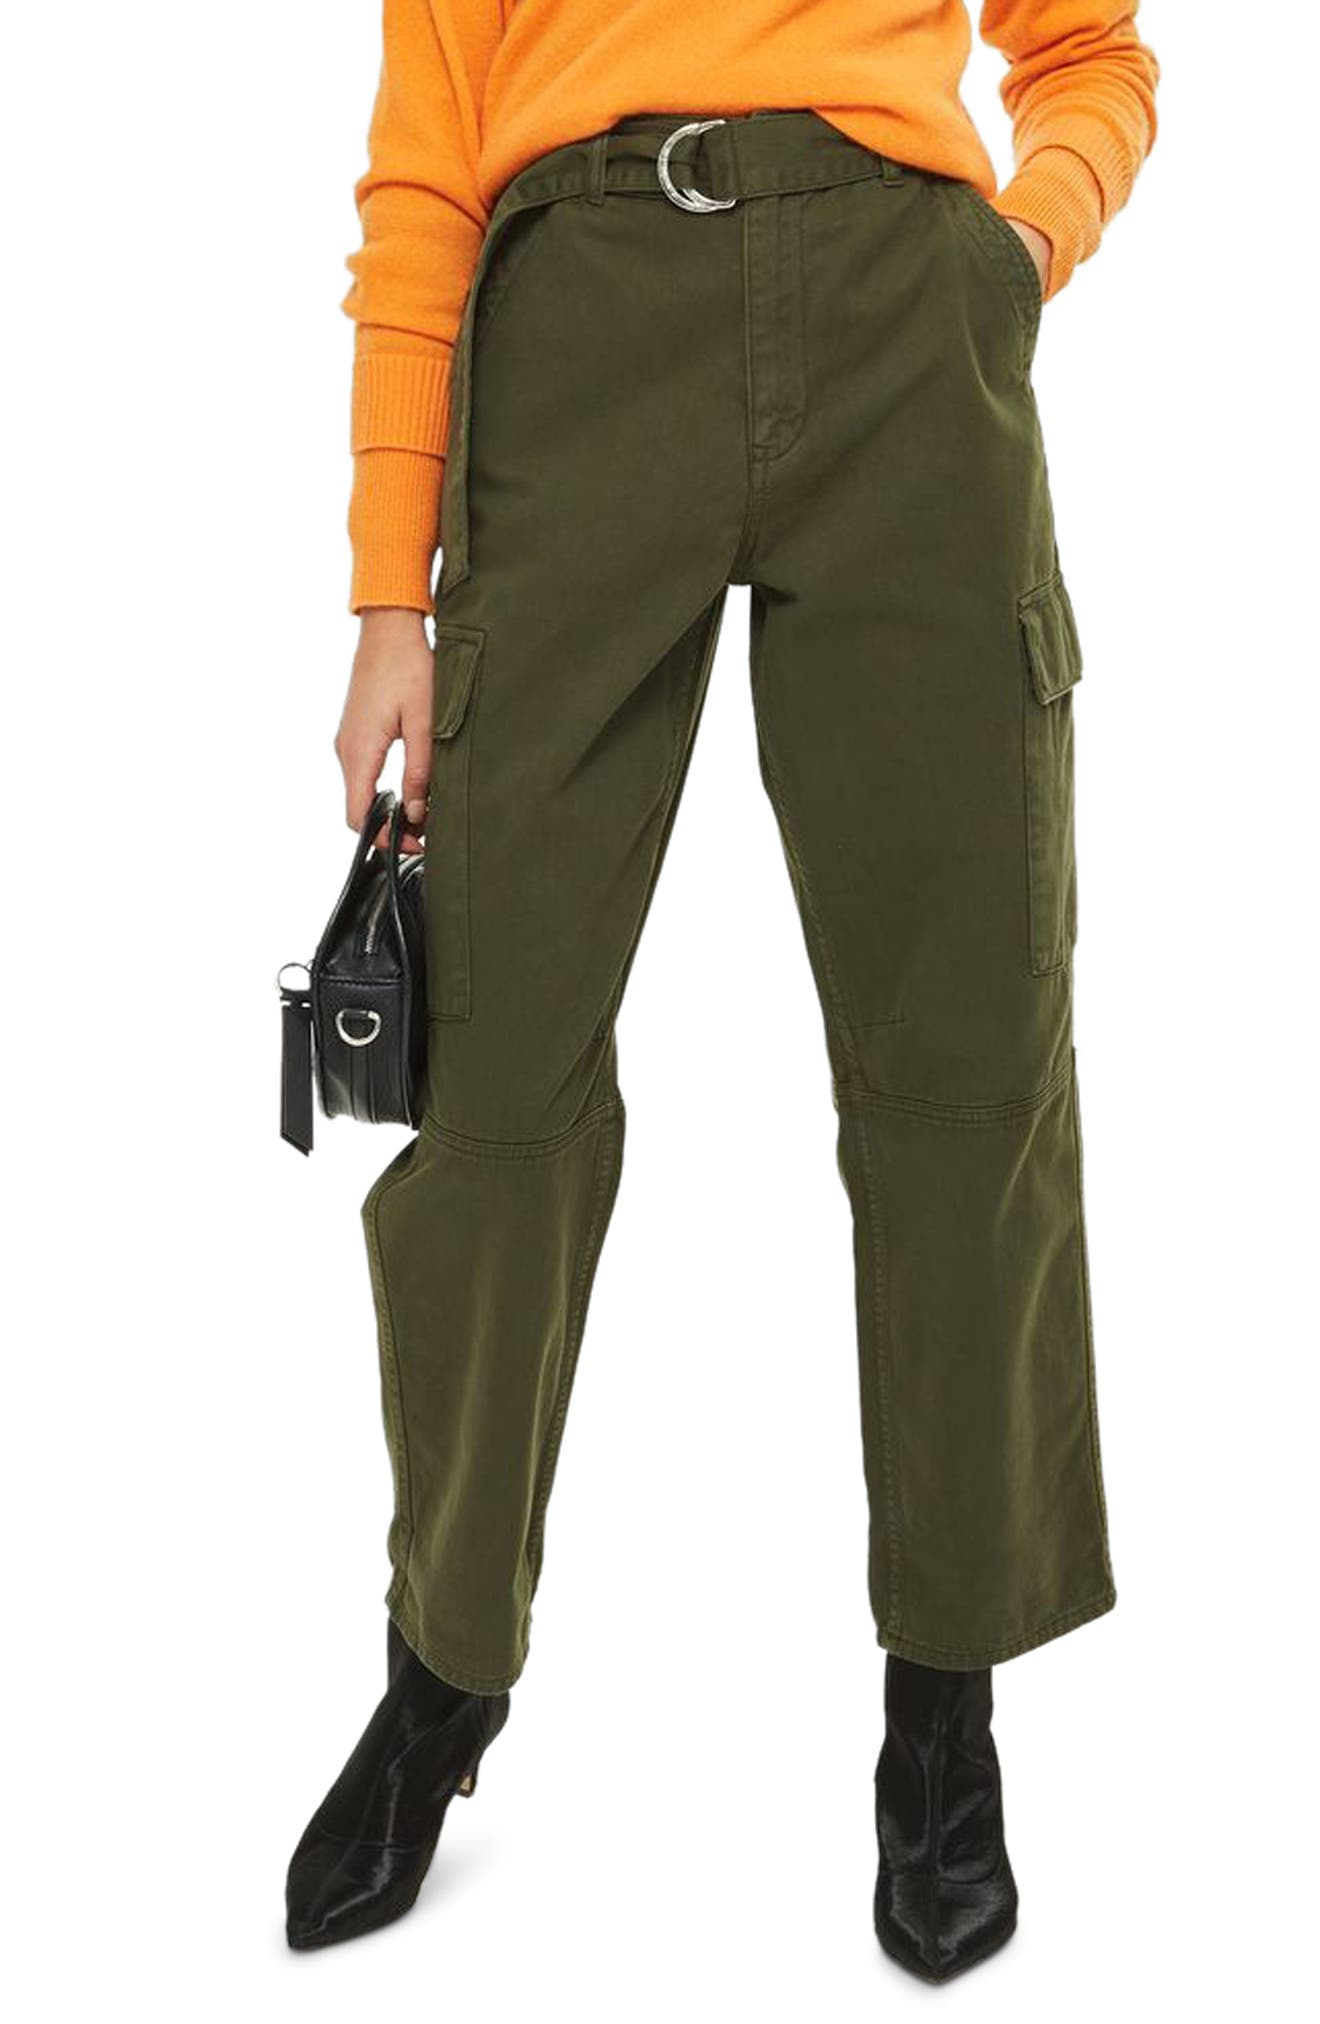 Combat Pocket Utility Trousers,                             Main thumbnail 1, color,                             Olive